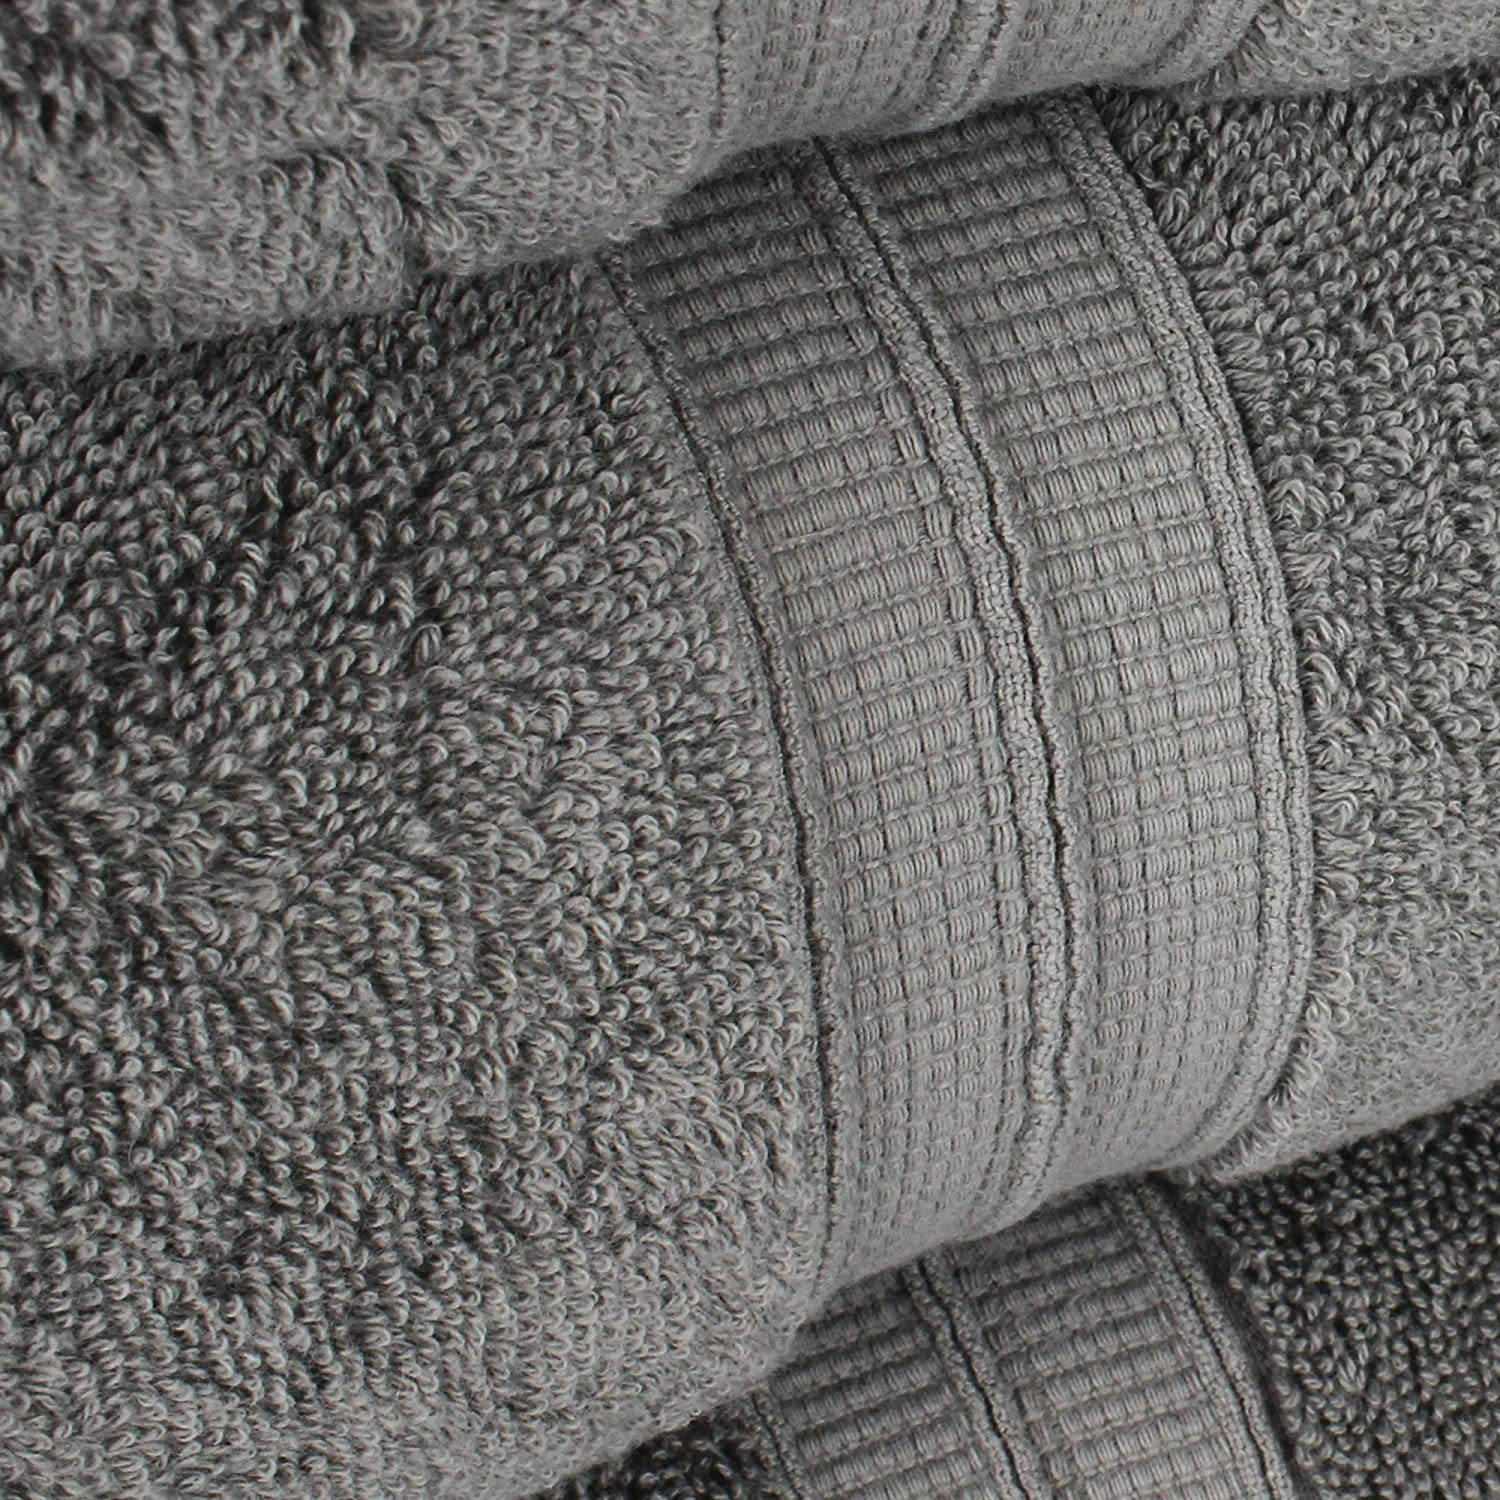 Navy 2 Ply Turkish Ring-Spun Cotton Yarn Makes The Luxe-Factor Eco-Friendly, Long-Stable 20//2 Luxury Premium Turkish Cotton 6-Piece Towel Set